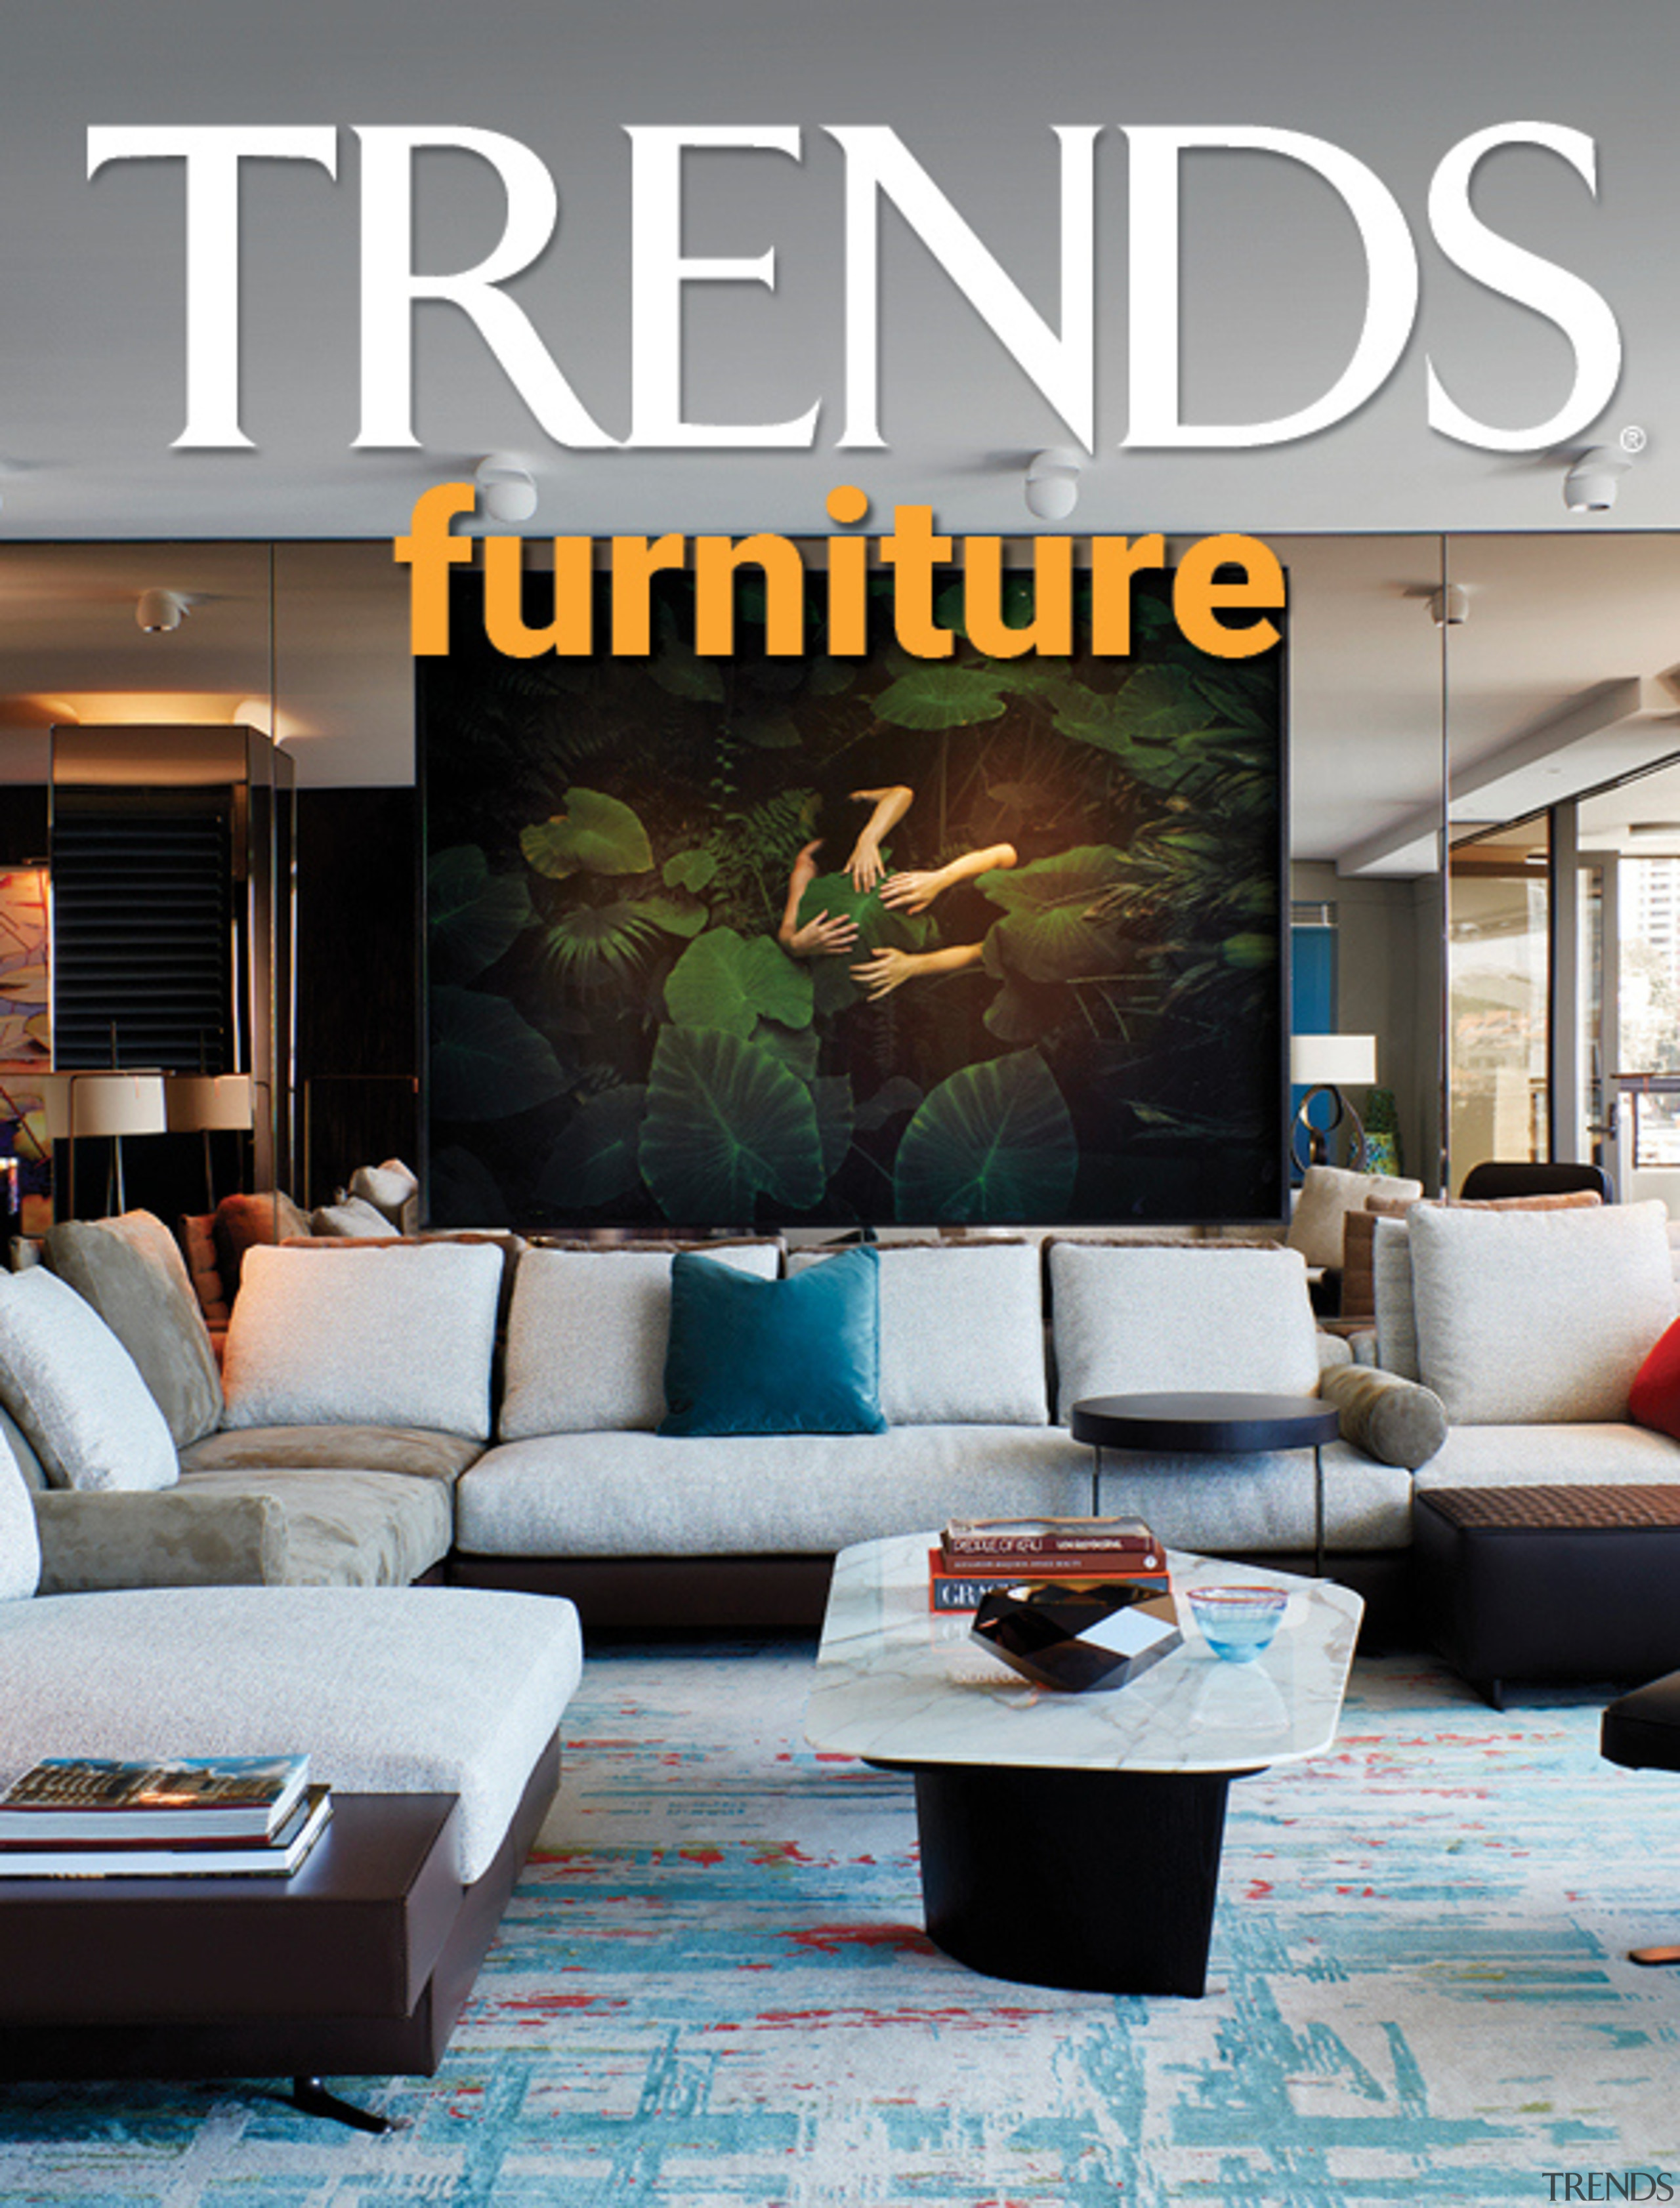 TRENDS MINI COVER 30 furniture - building | building, ceiling, couch, design, floor, furniture, home, house, interior design, lighting, living room, property, room, table, wall, gray